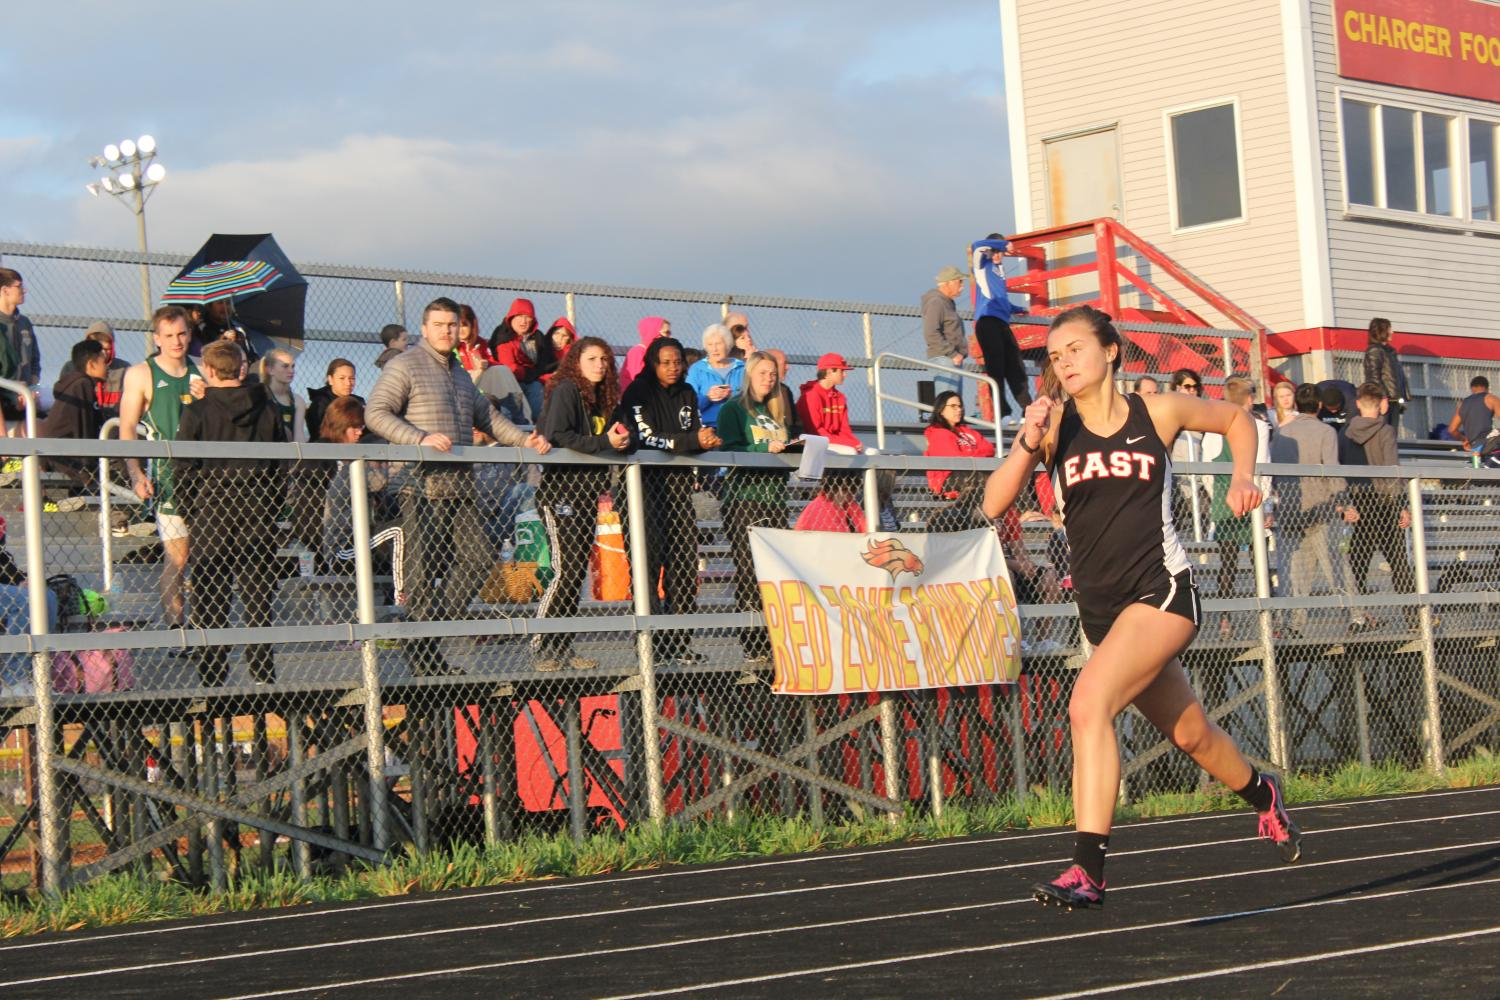 Senior+Claire+Feldhaus+runs+for+the+Bullitt+East+track+team.+Feldaus+would+have+competed+in+the+girls+4x400+meter+relay+at+state%2C+but+it+was+cancelled+due+to+bad+weather.